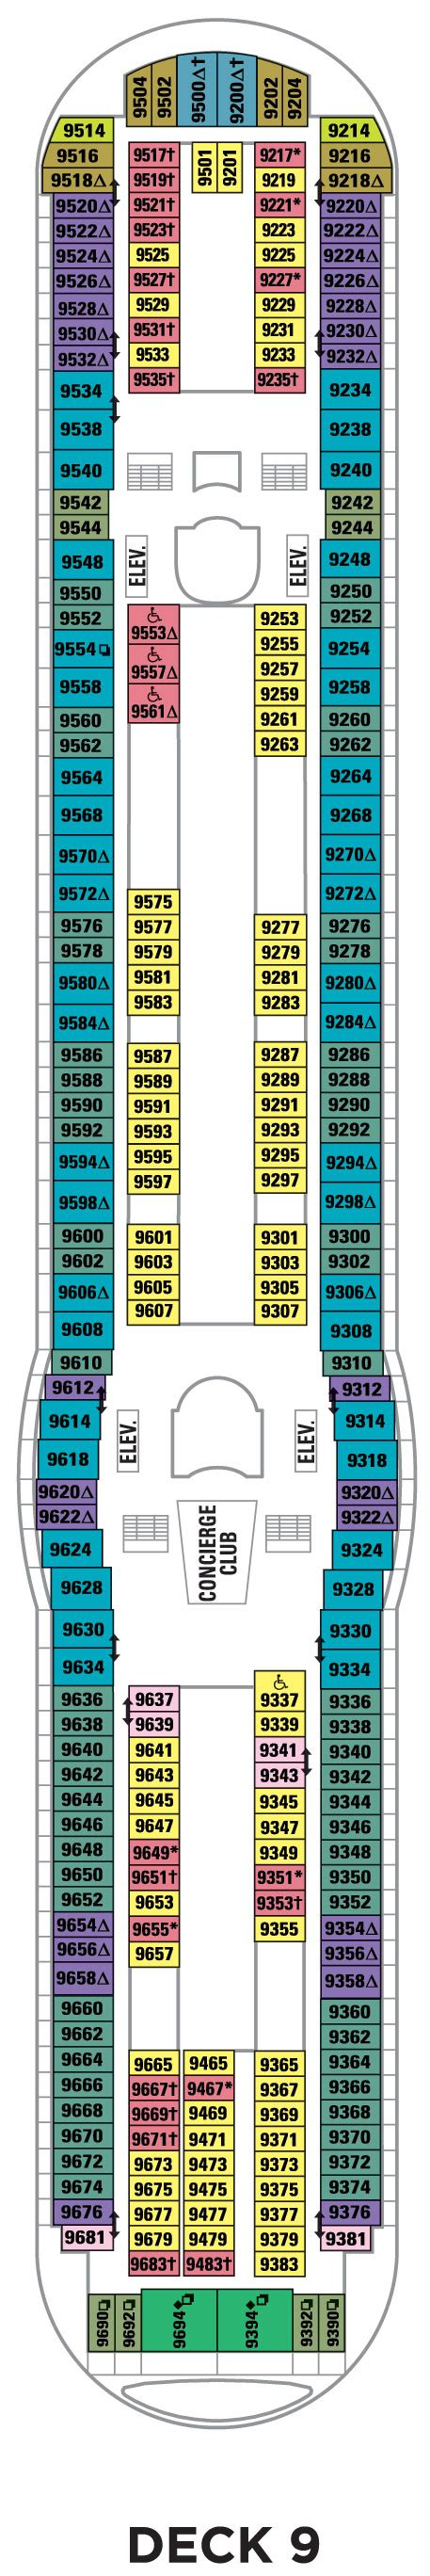 Royal Caribbean Explorer Of The Seas Deck Plan 9